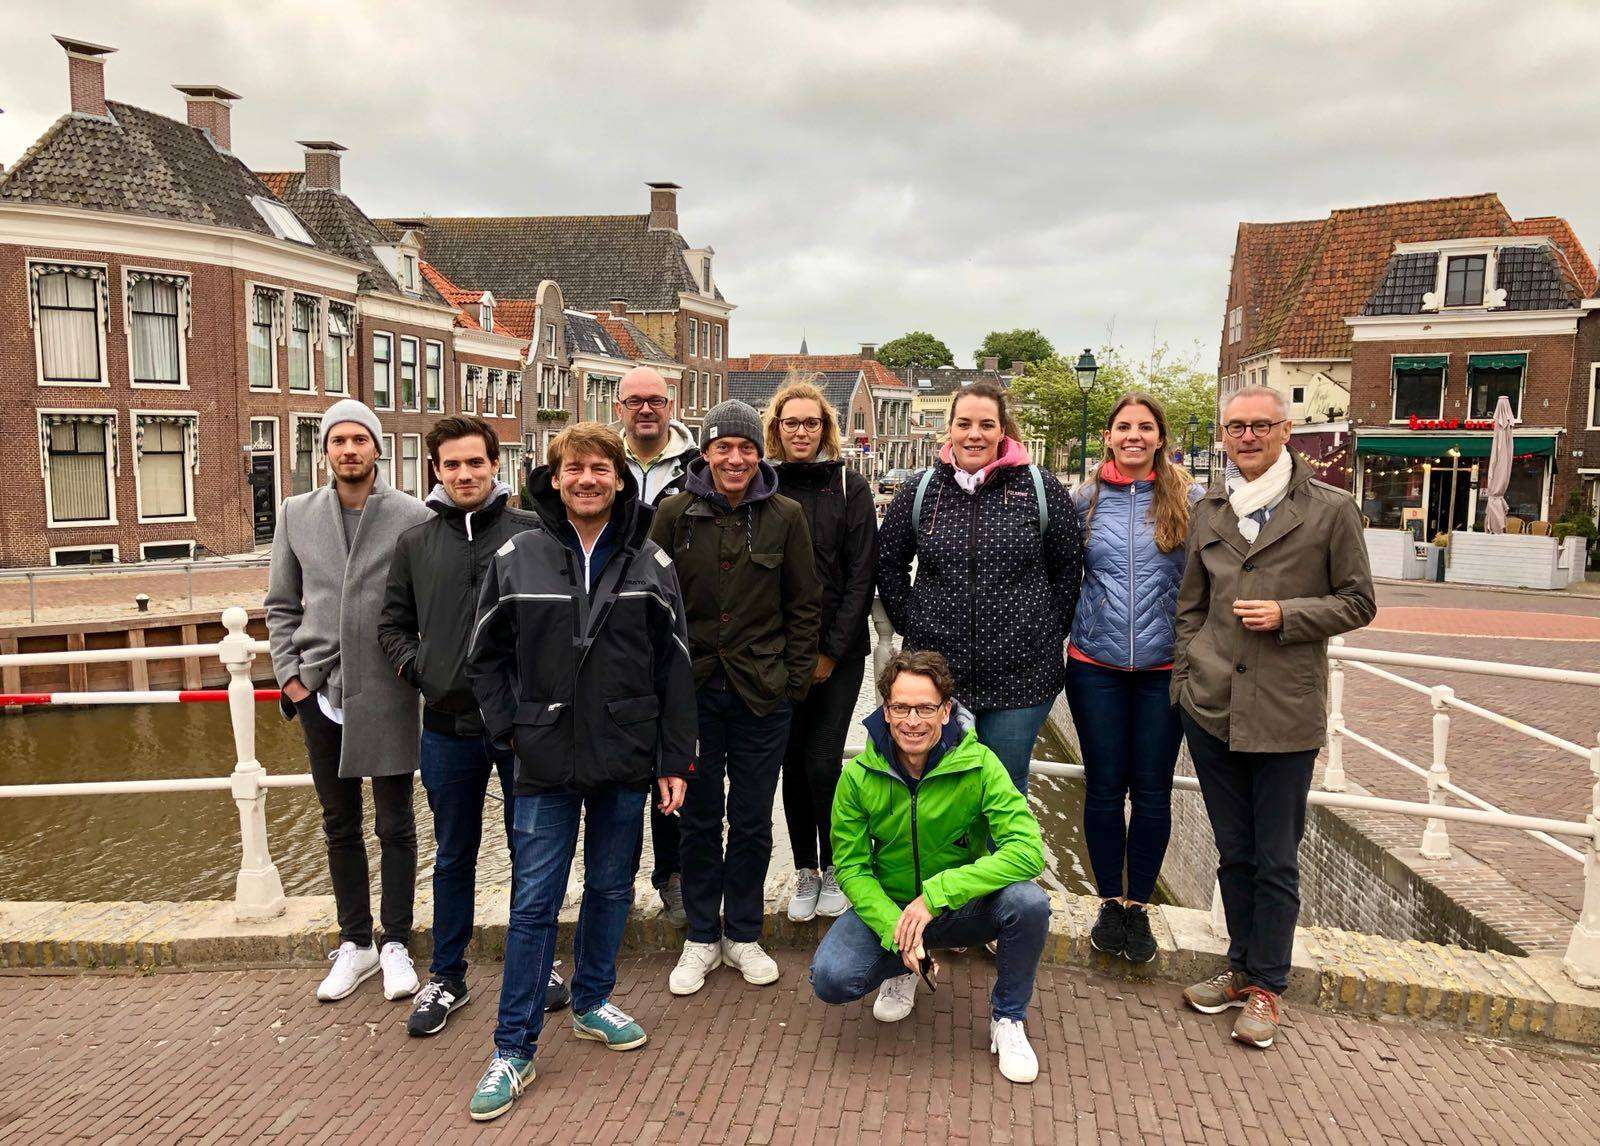 Team Event 2018 - Ein Segeltörn am Ijsselmeer (teamevent.jpg)